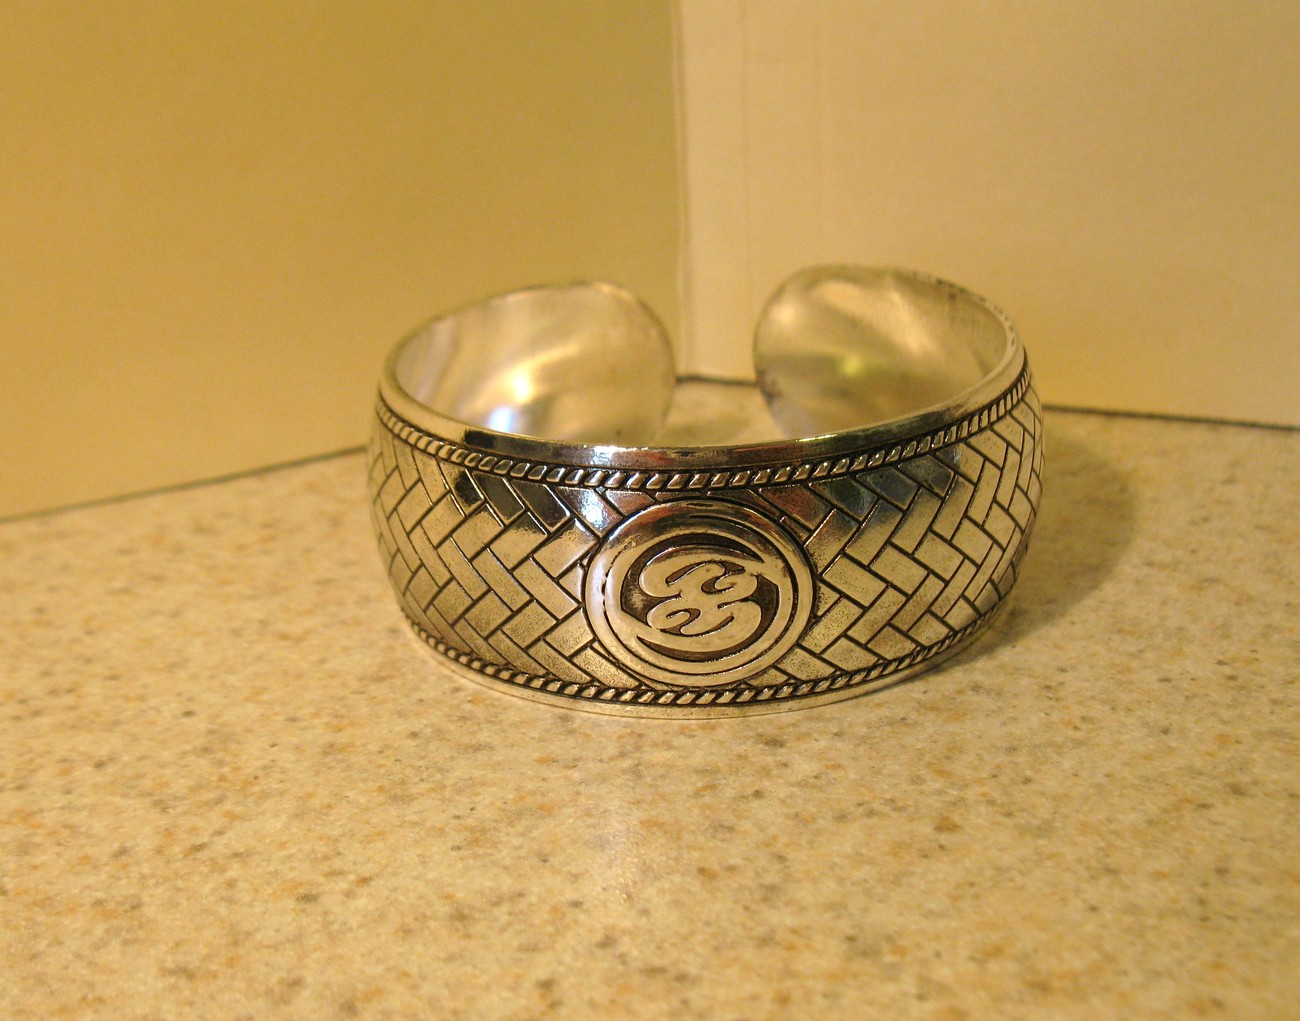 BRACELET BEAUTIFUL SILVER CUFF BRICK WORK DESIGN #154